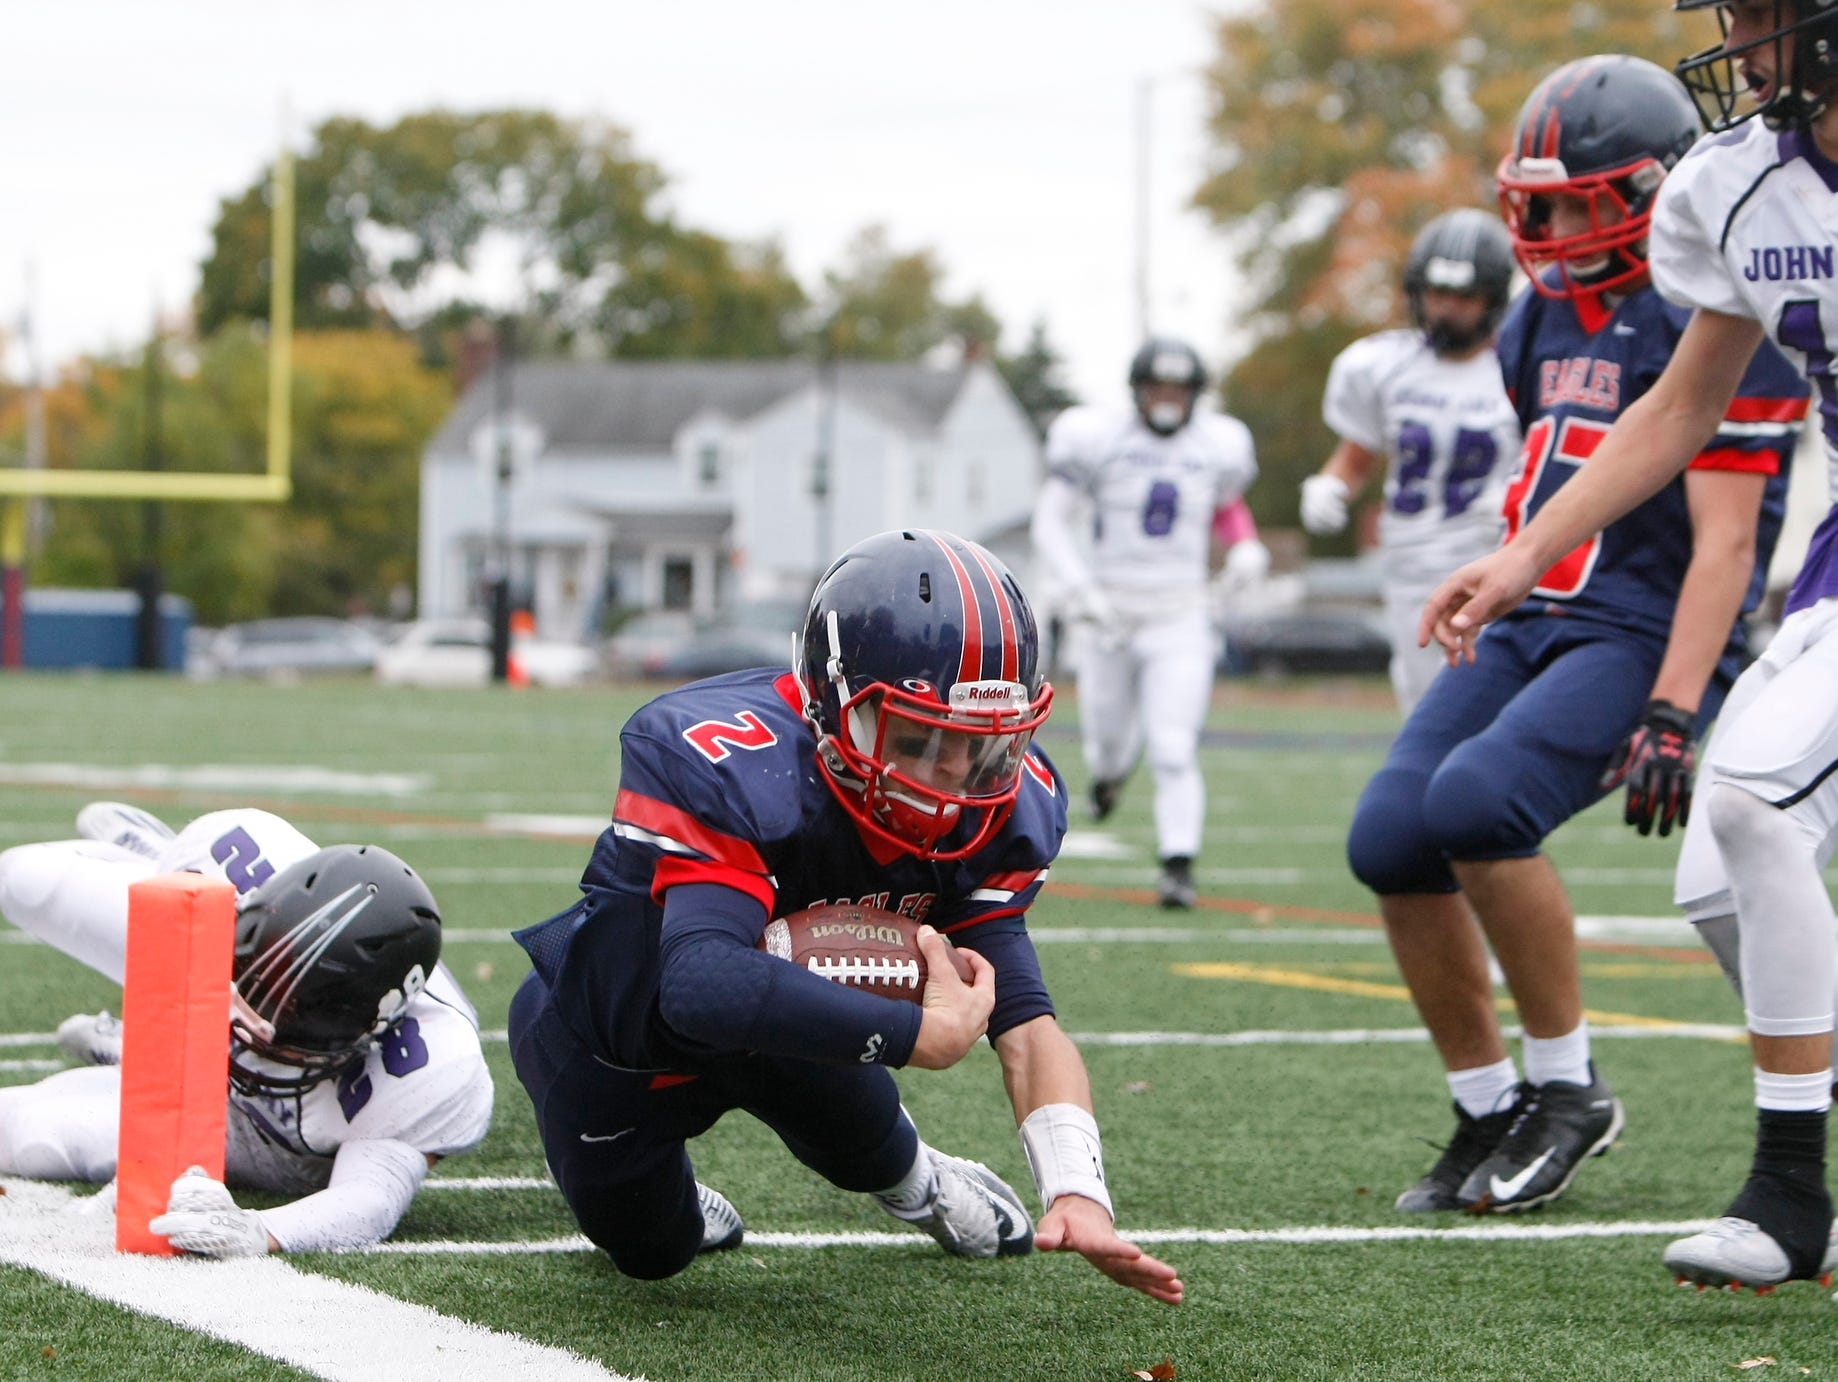 Eastchester quarterback John Arcidiacono (2) breaks the tackle of John Jay's Liam Tassone (28) for a touchdown during a varsity football game at Eastchester High School on Saturday, Oct. 24, 2015.